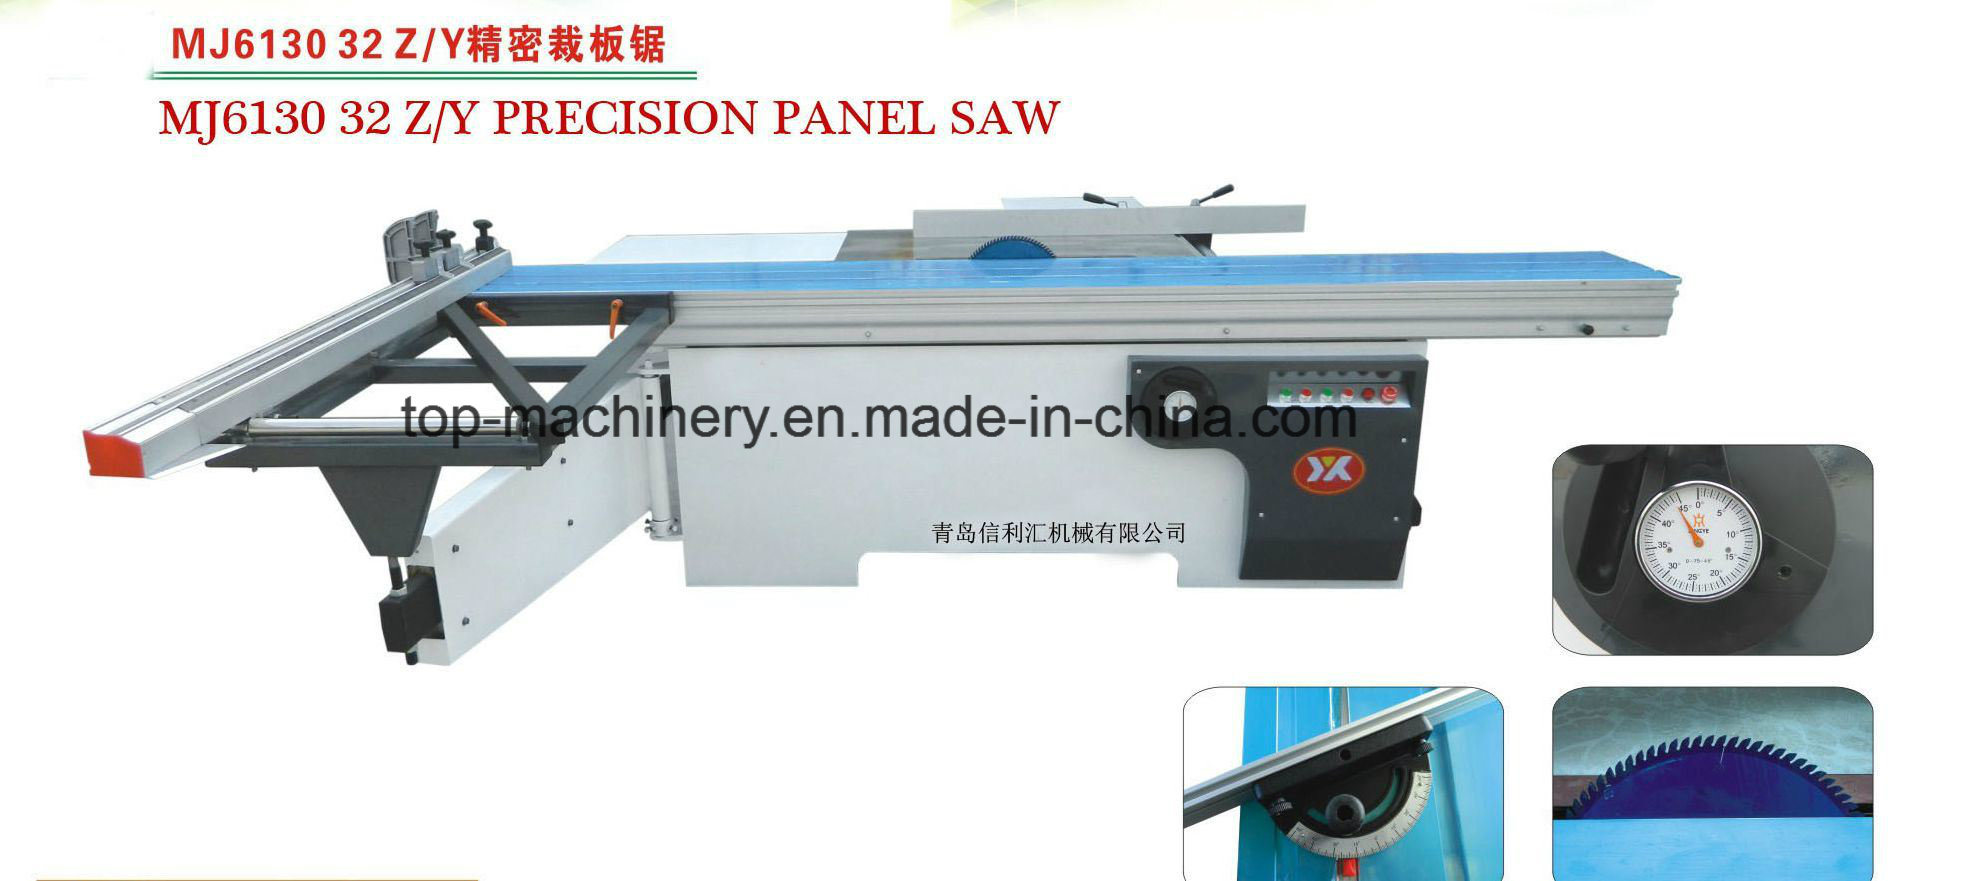 Sliding Table Saw with 3200 Length Cheapest and Lowest Price Your Best Choice